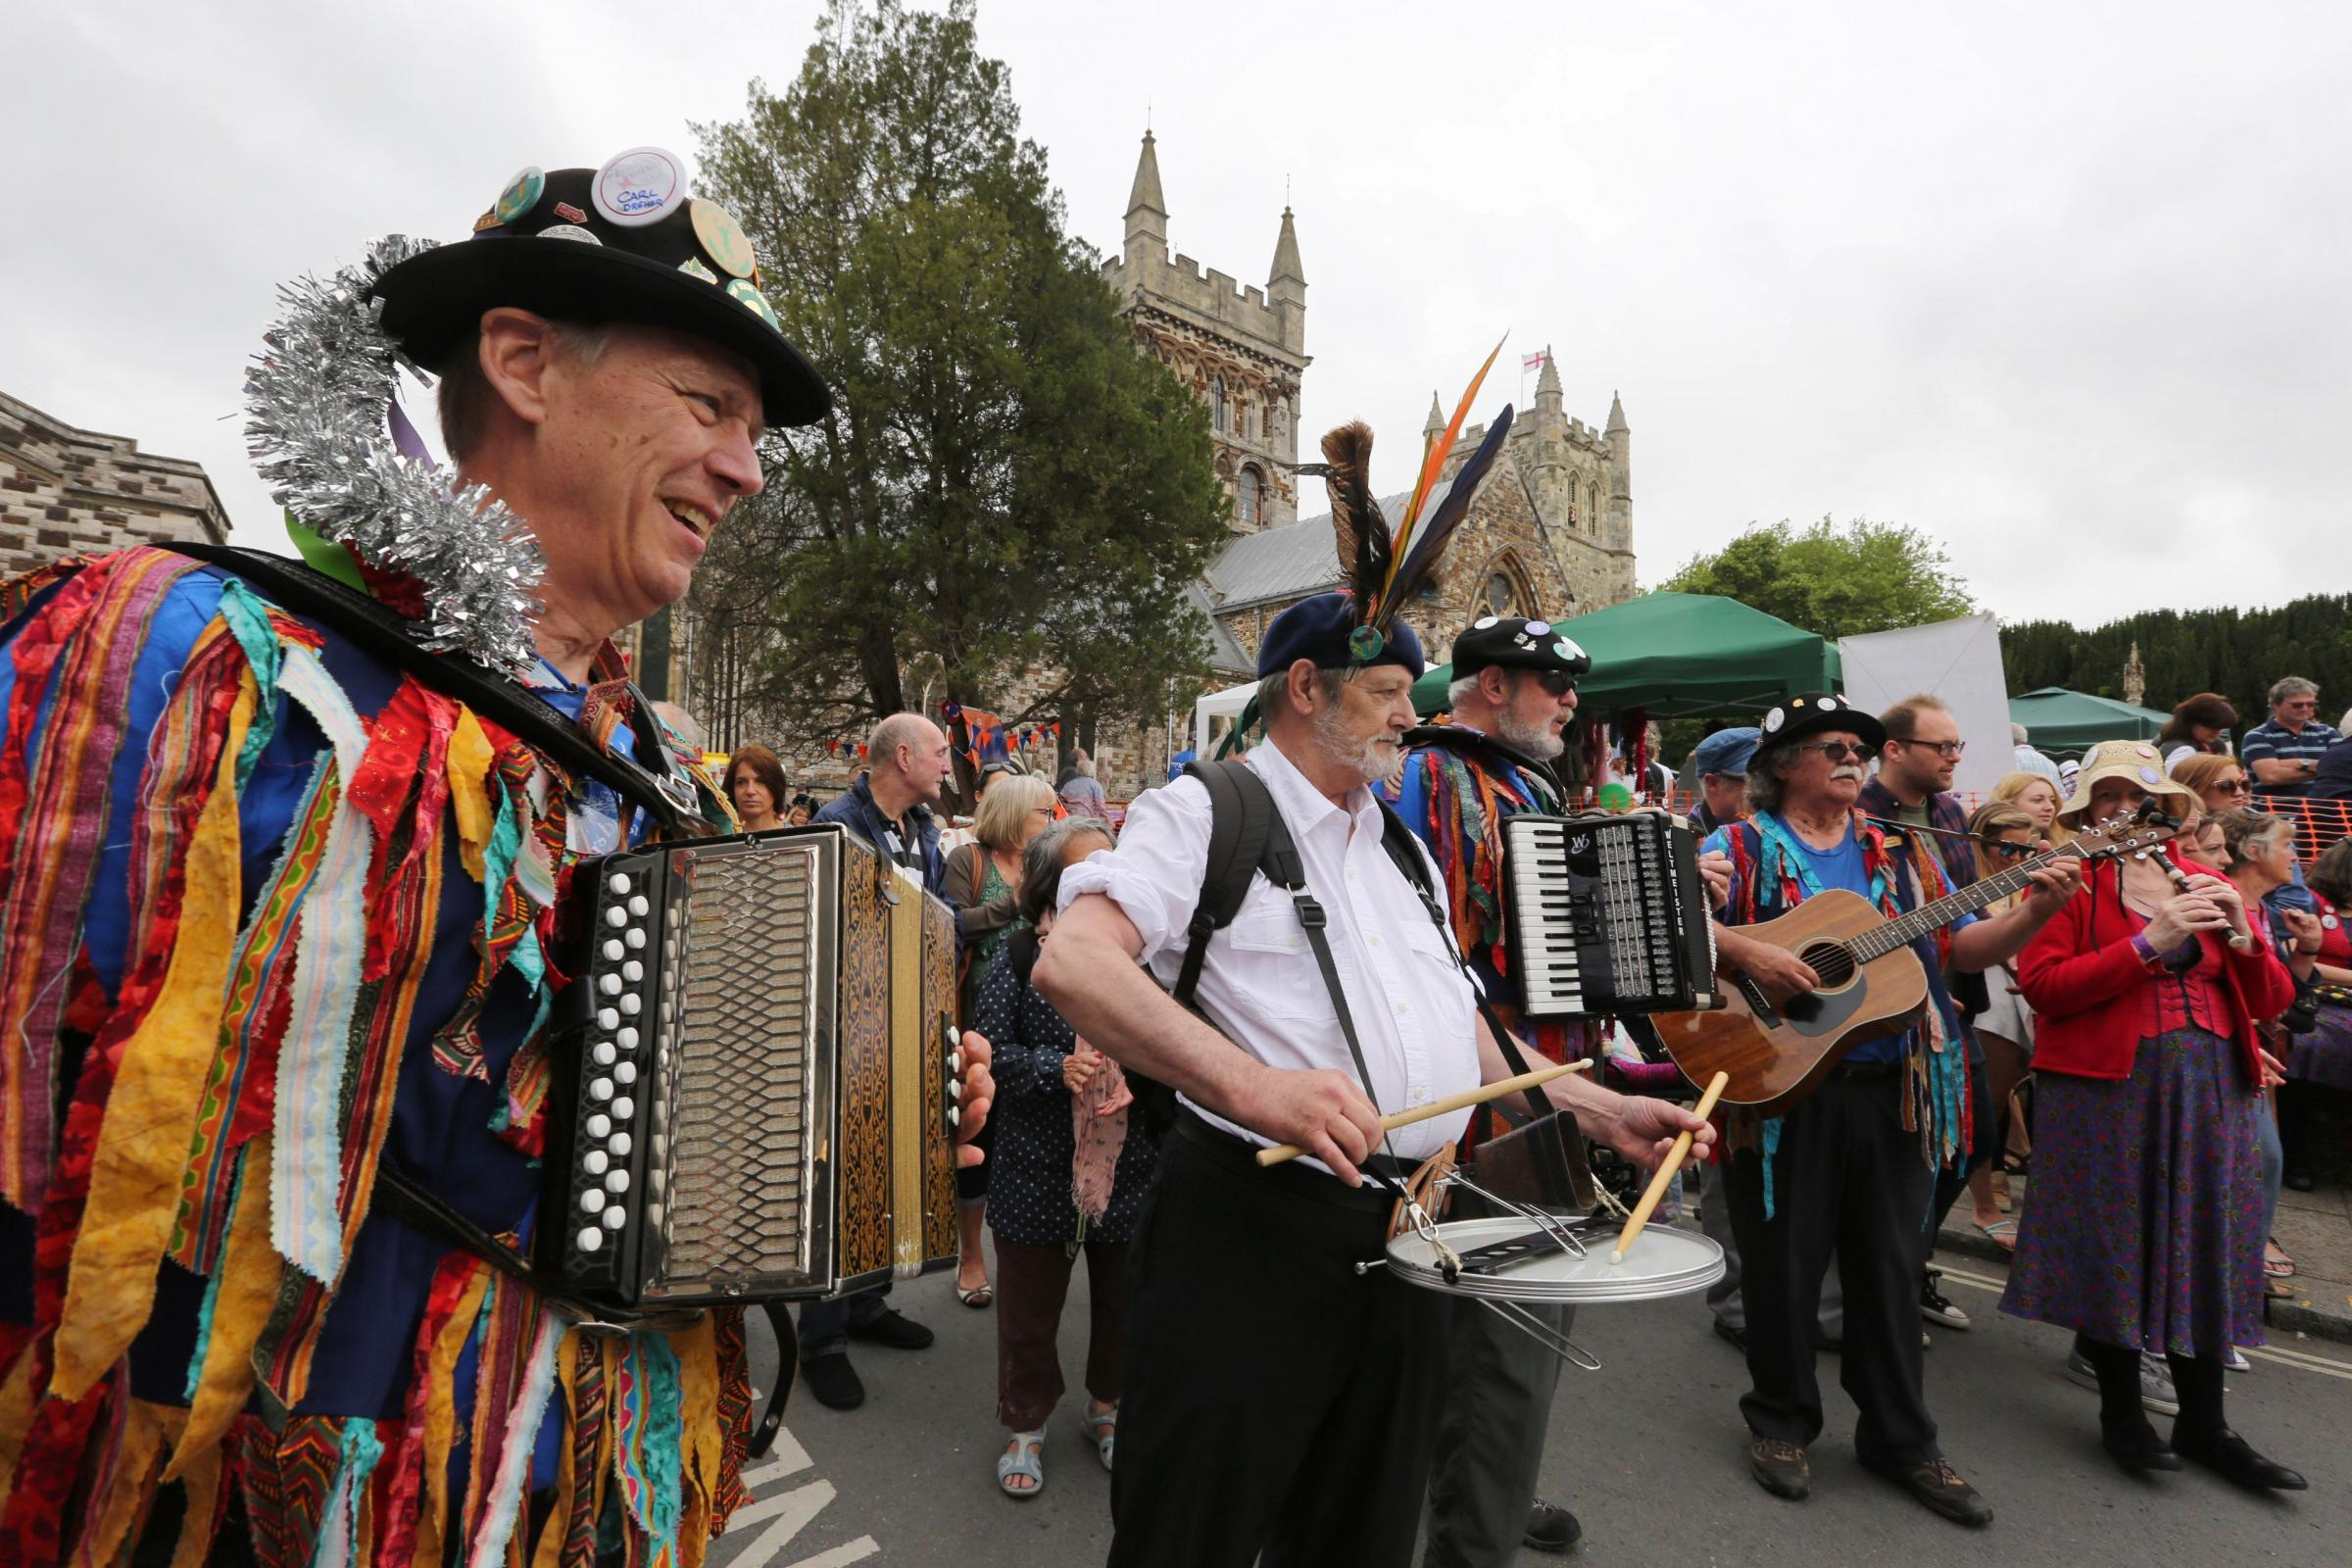 Wimborne Folk Festival. The main parade heads through the town..